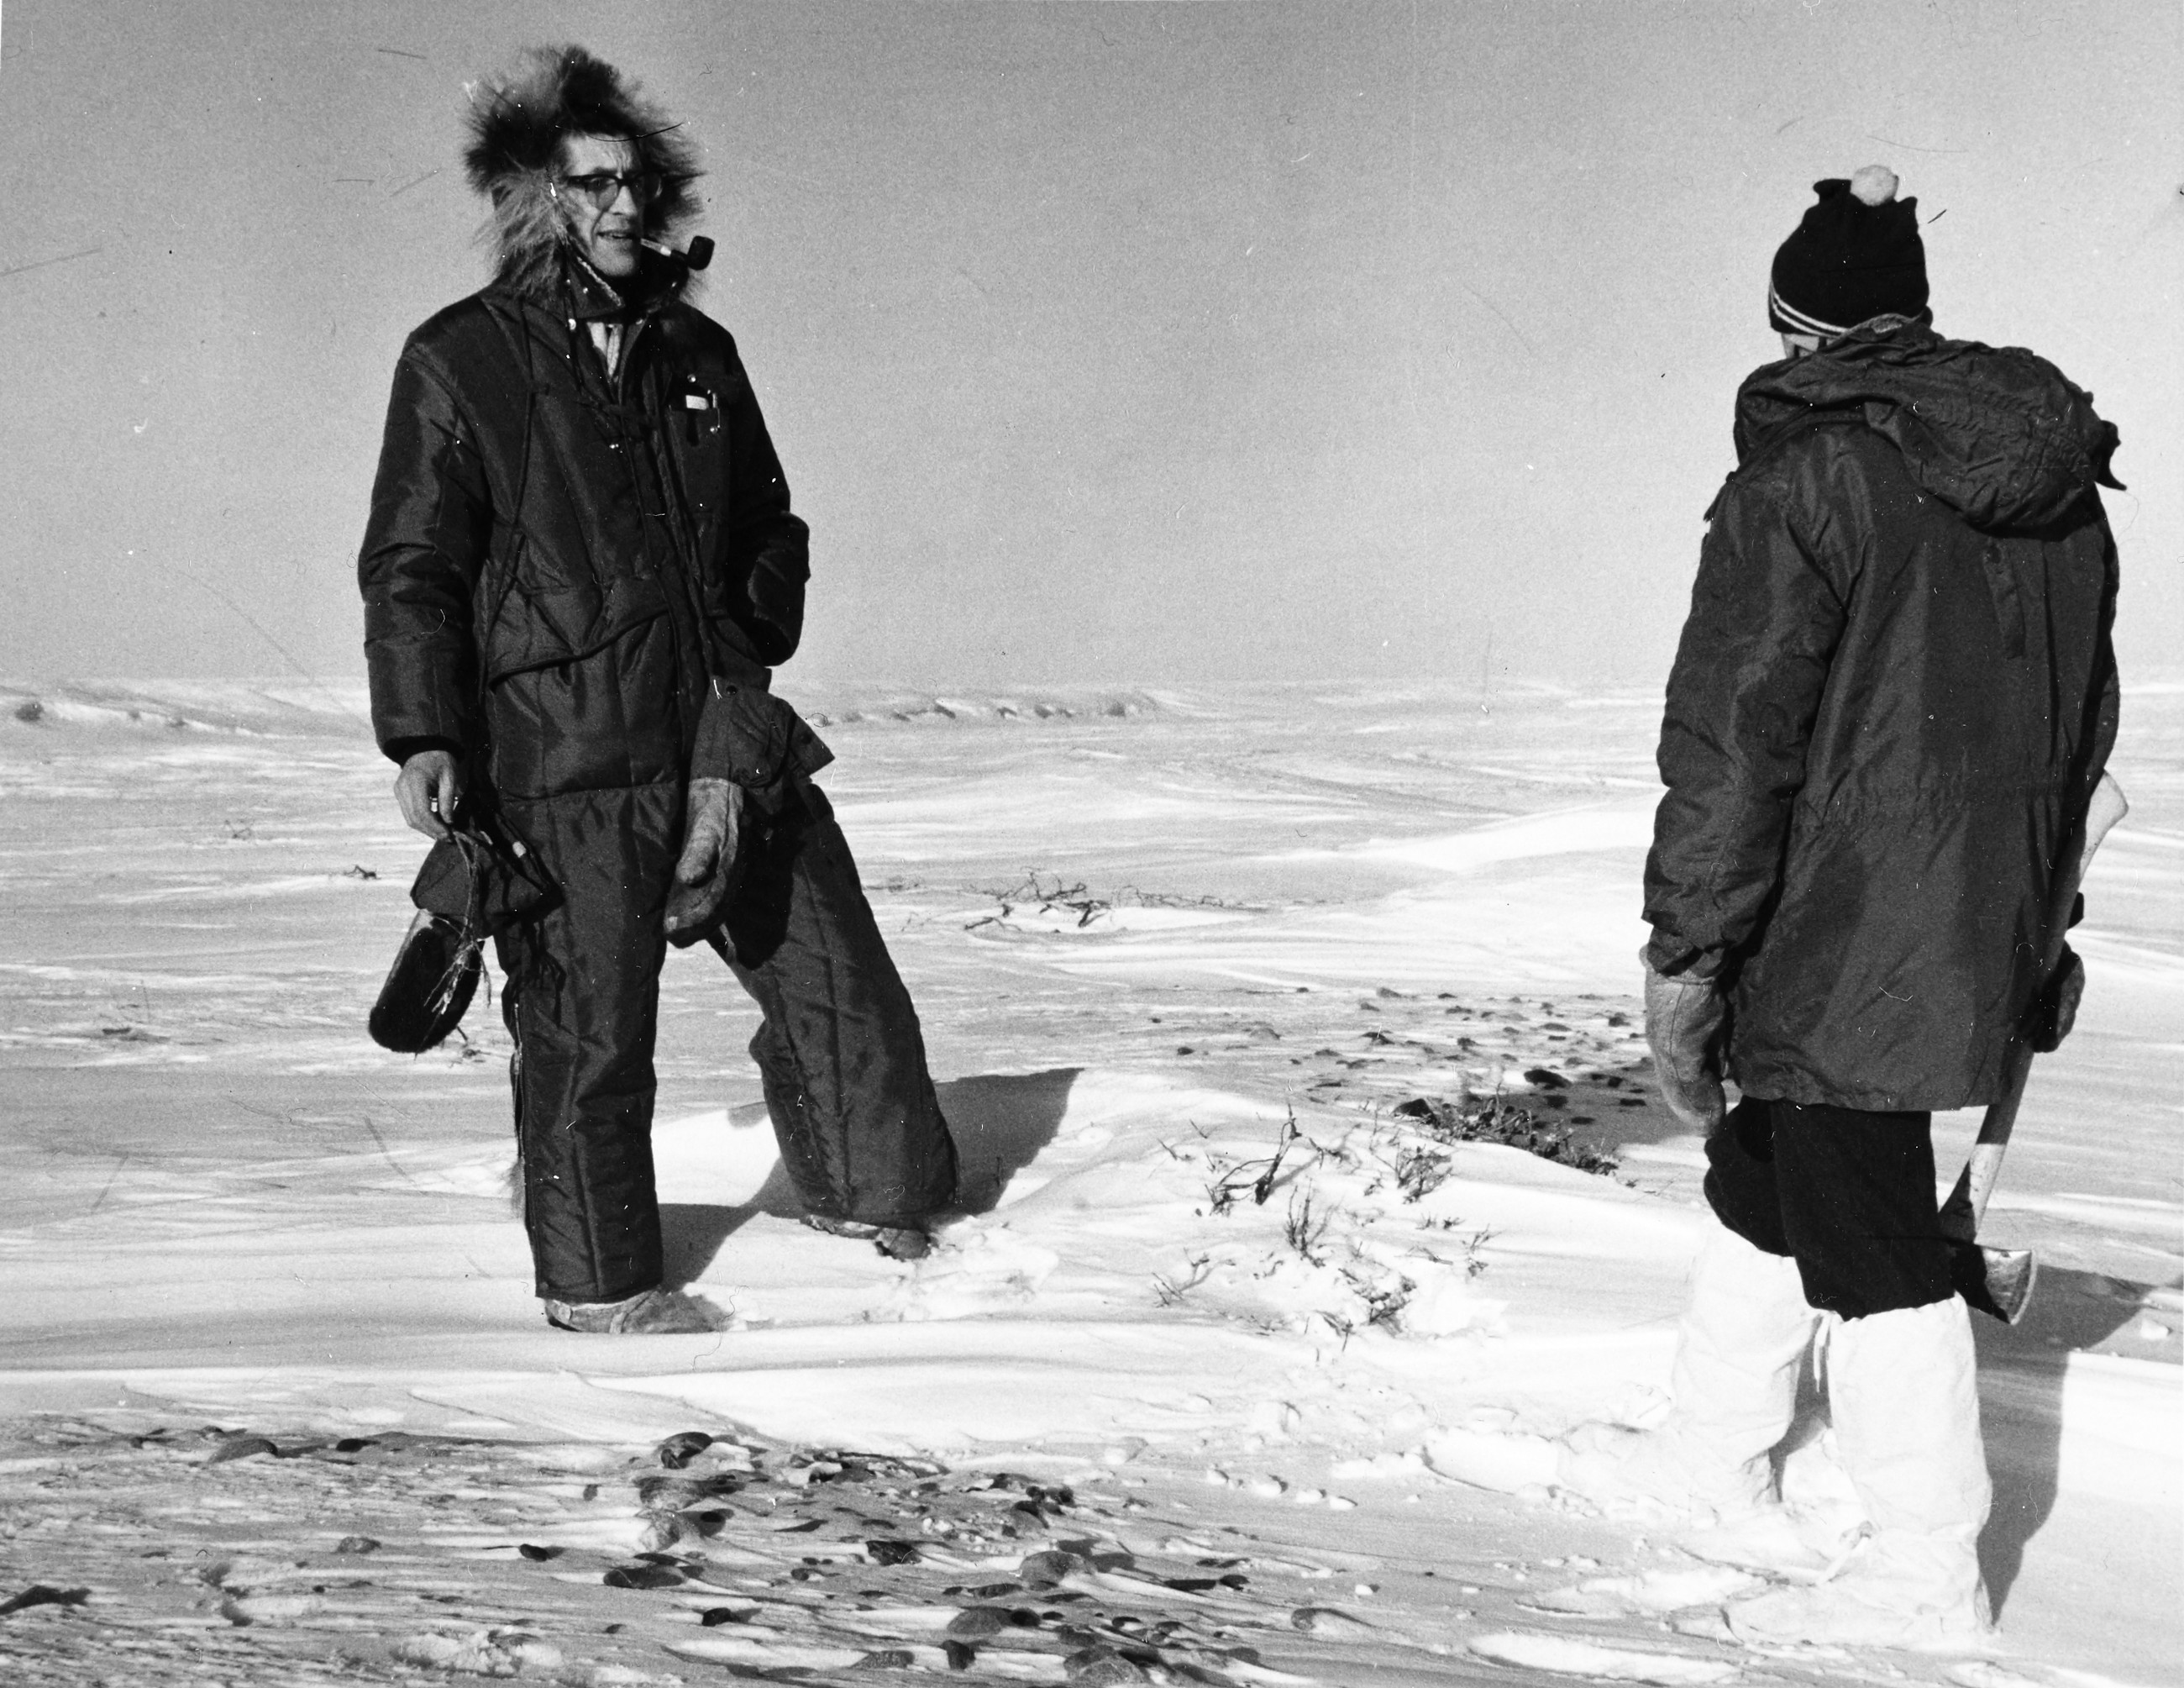 two men standing in the snow in Alaska, black and white photo